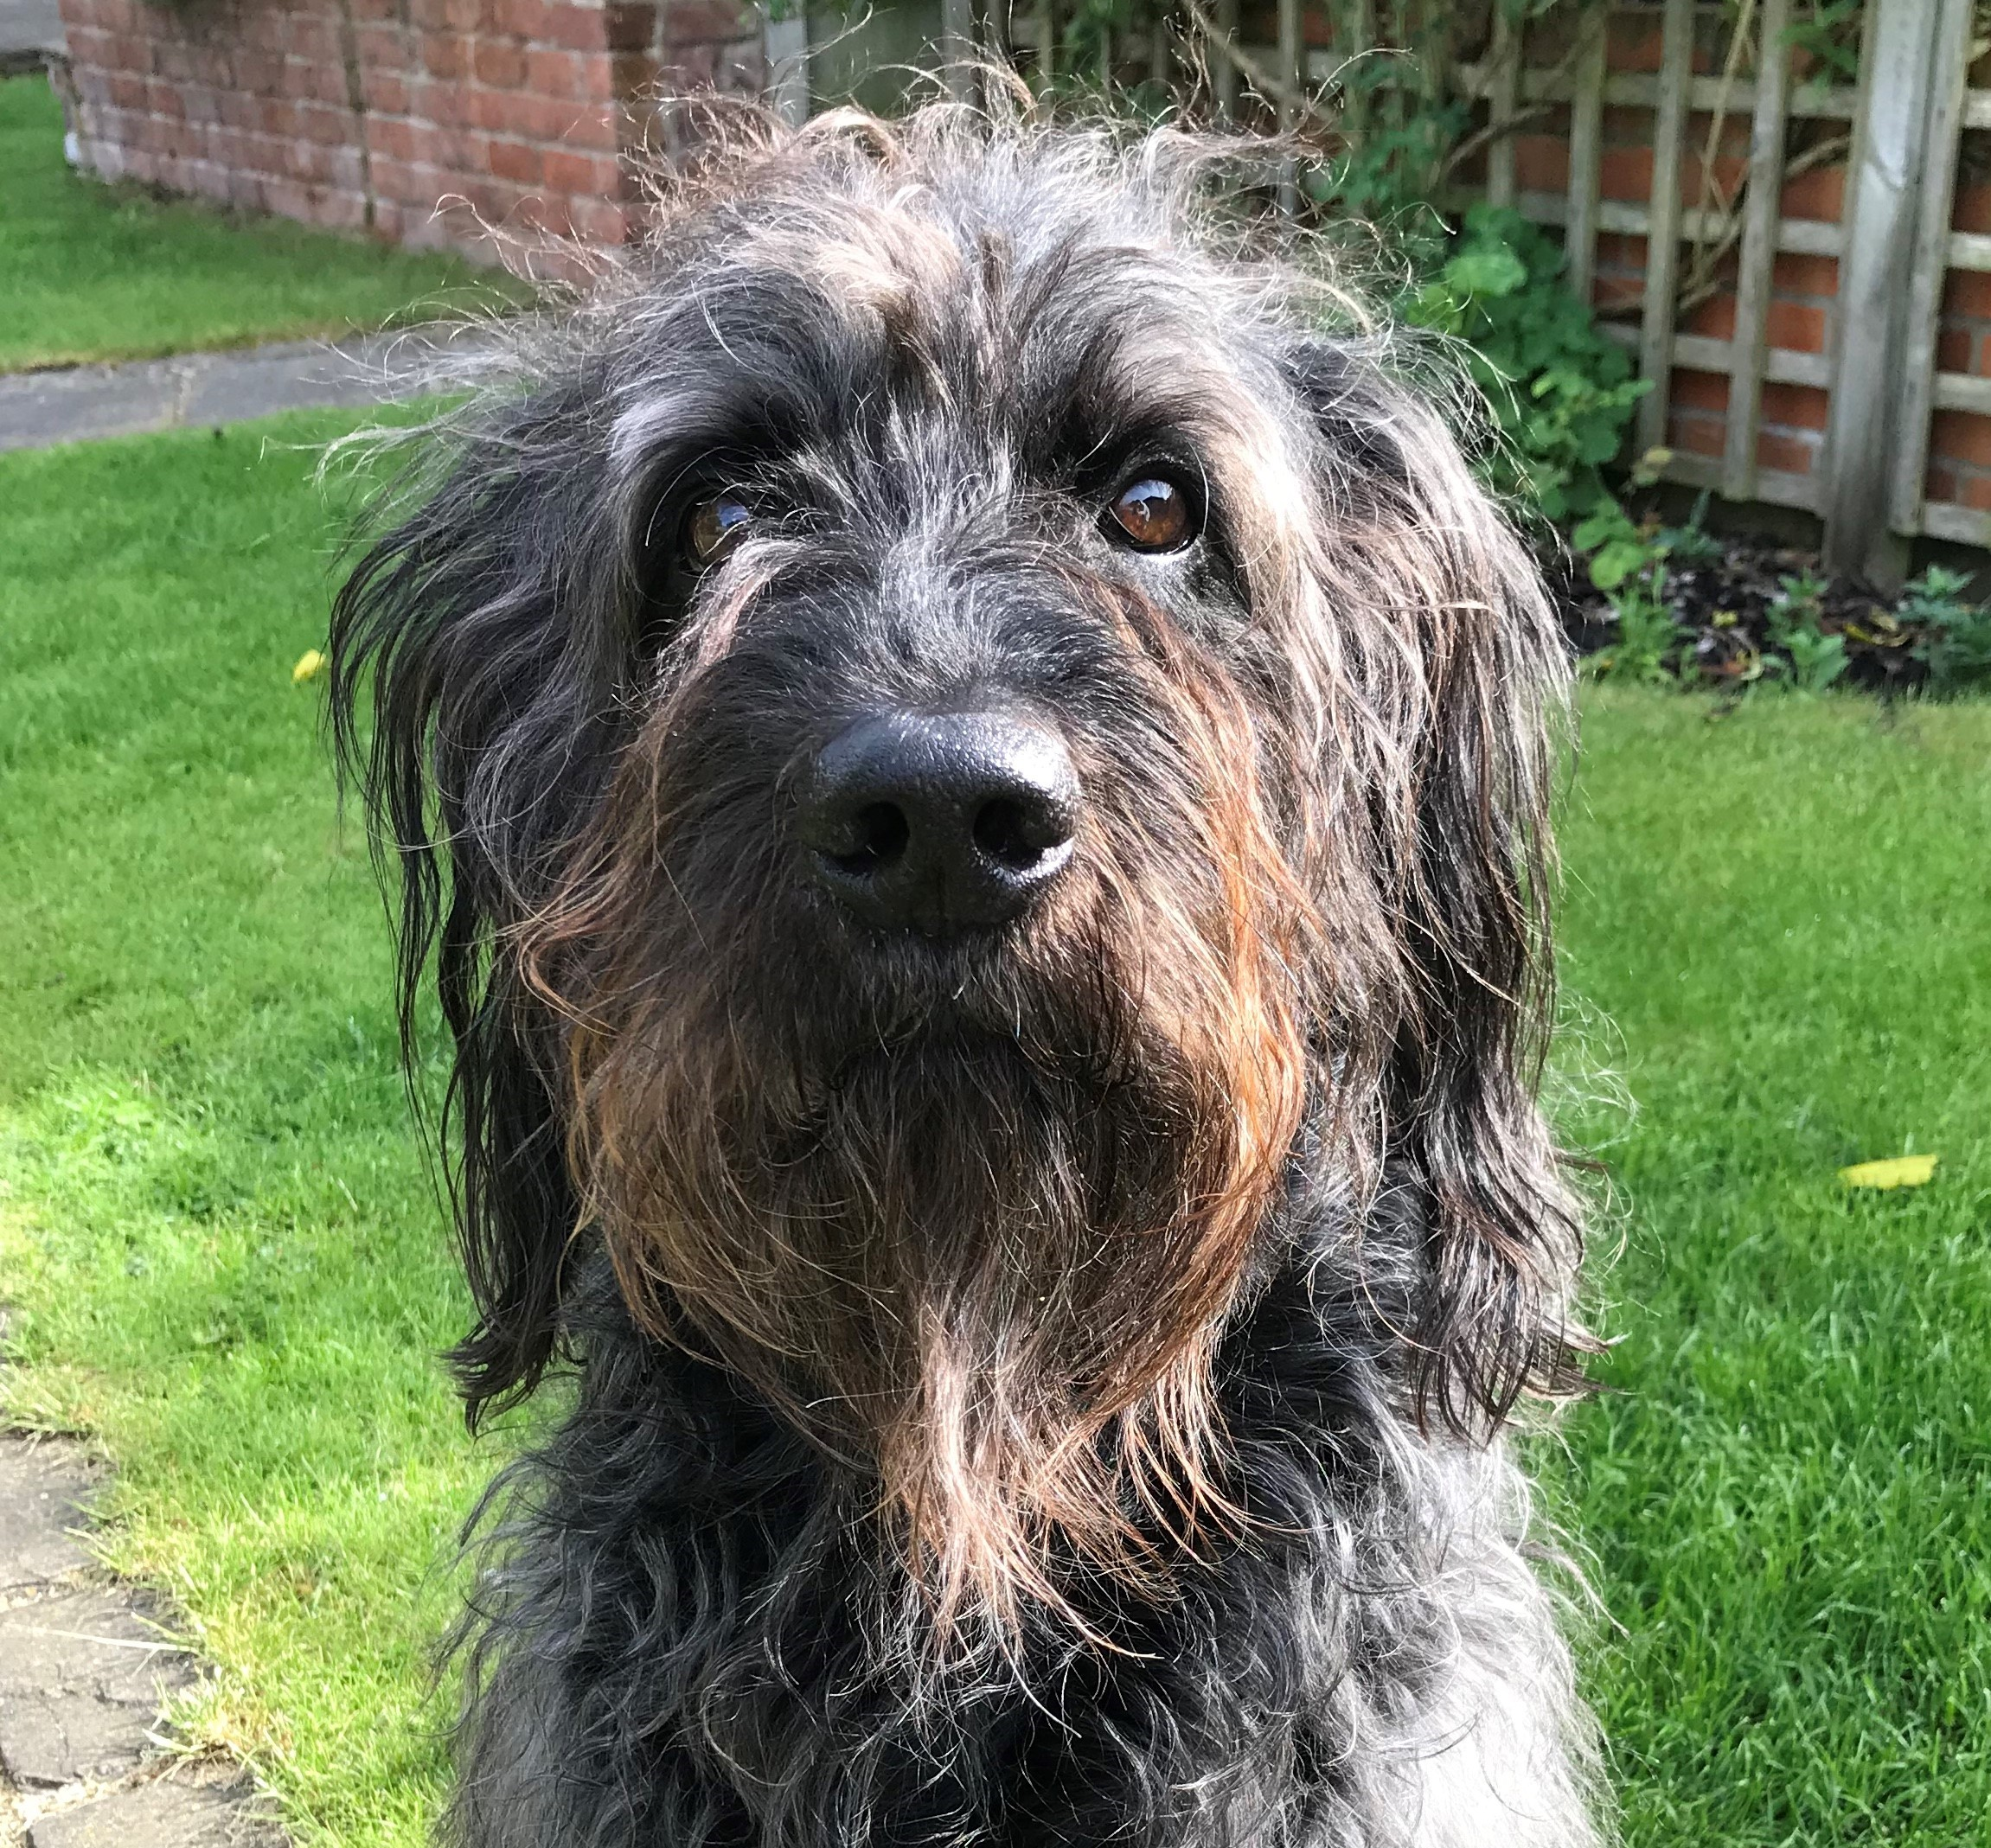 Dog contracted Alabama Rot